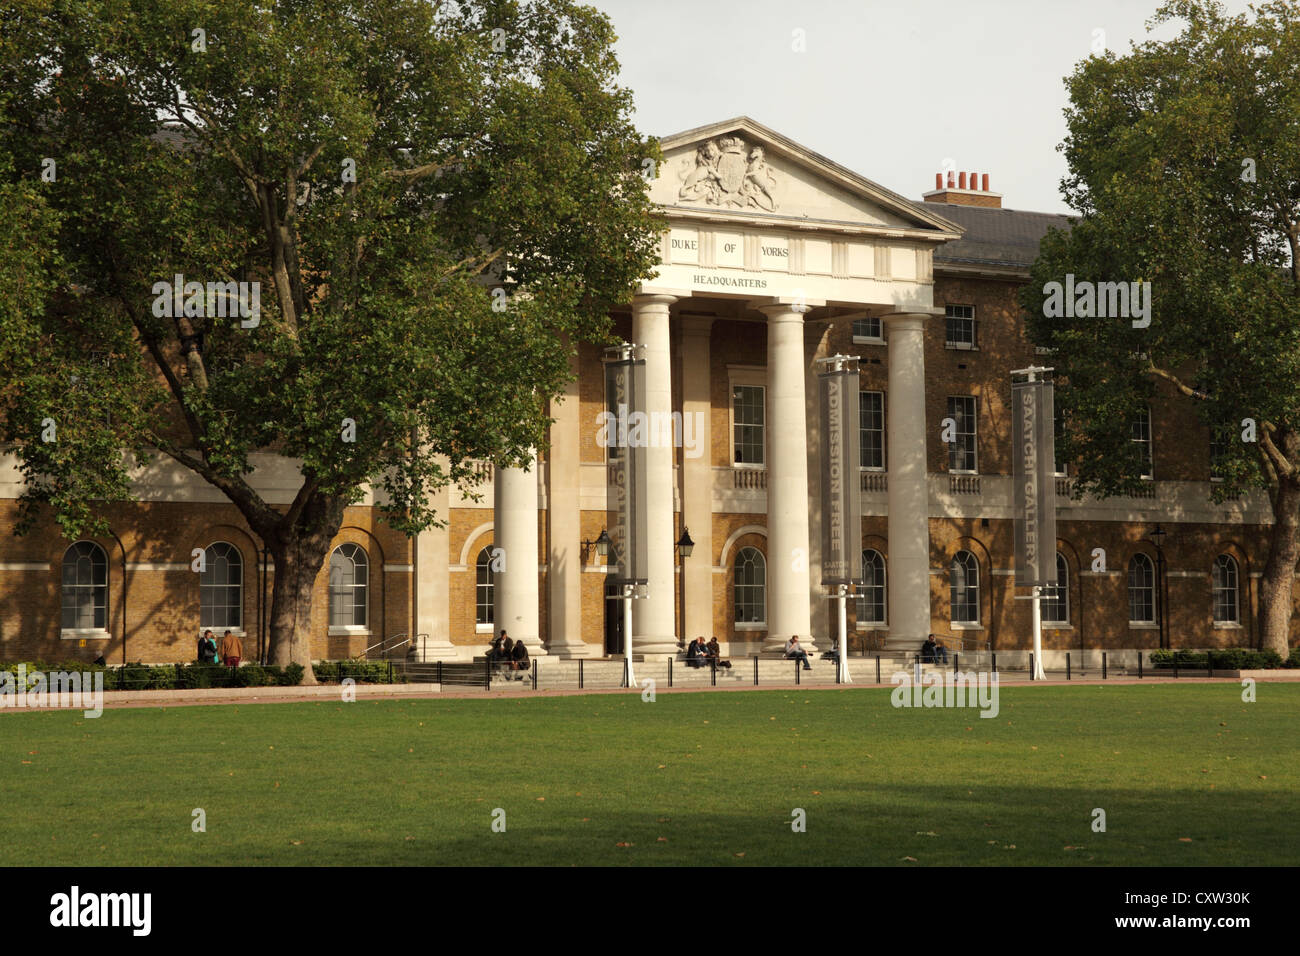 The Saatchi Gallery at the Duke of Yorks HQ in Kings Road Chelsea London - Stock Image